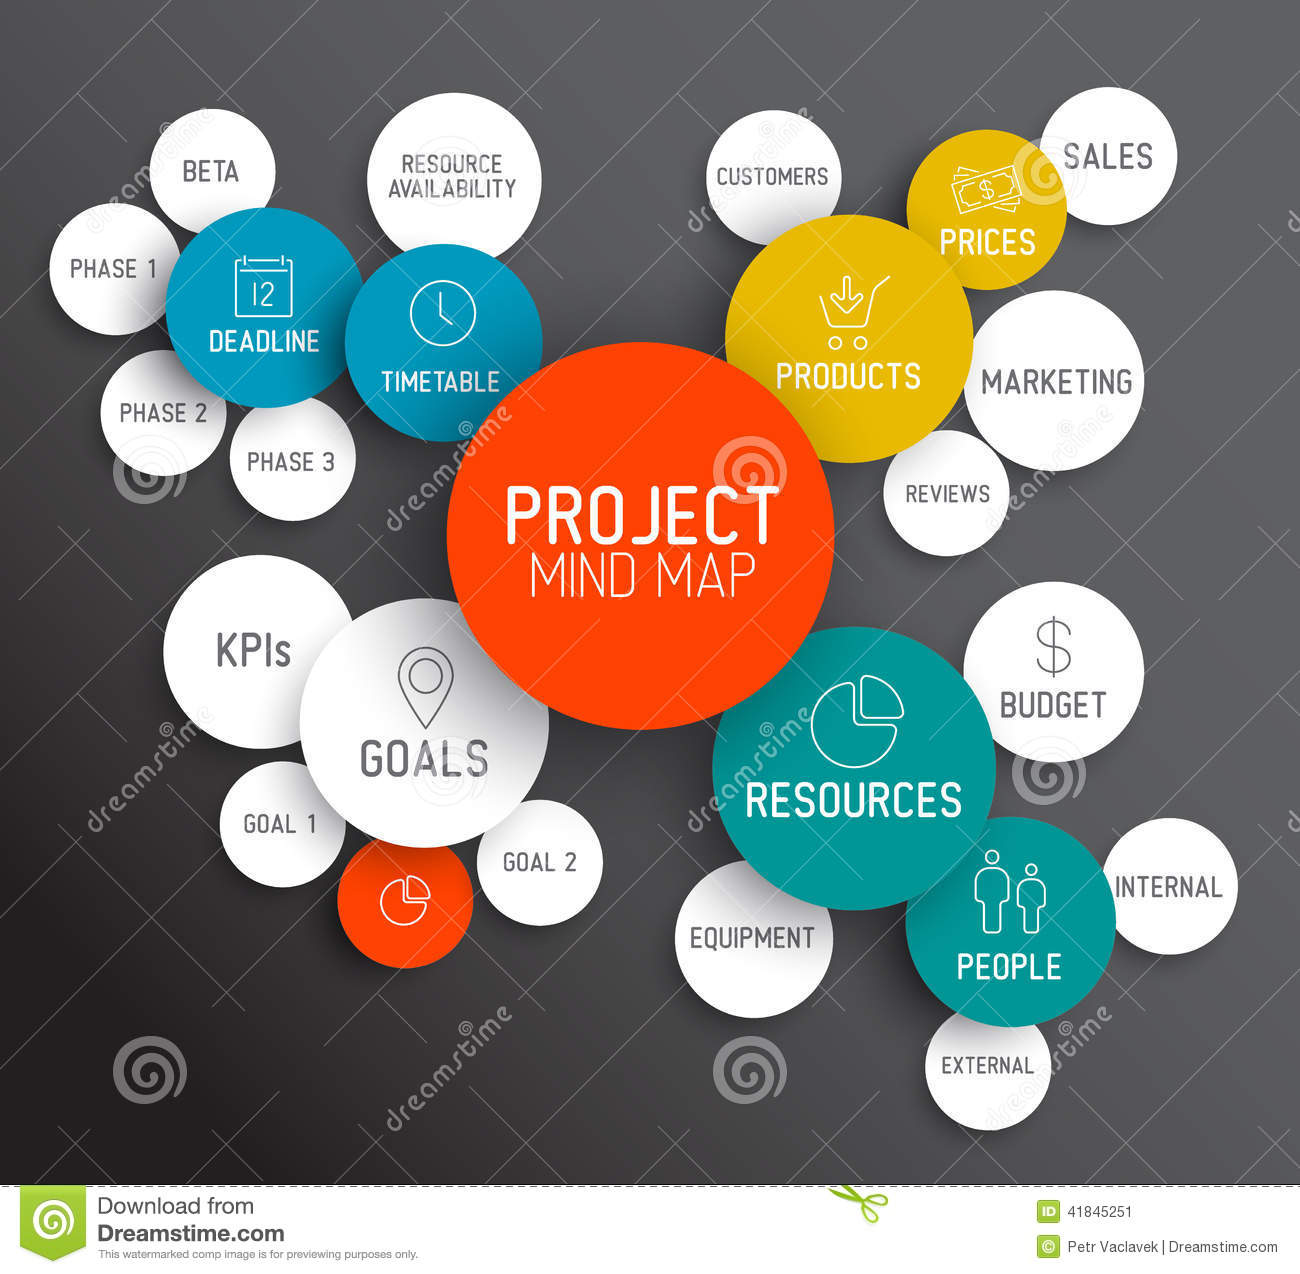 Project management mind map scheme concept stock illustration project management mind map scheme concept royalty free illustration ccuart Choice Image